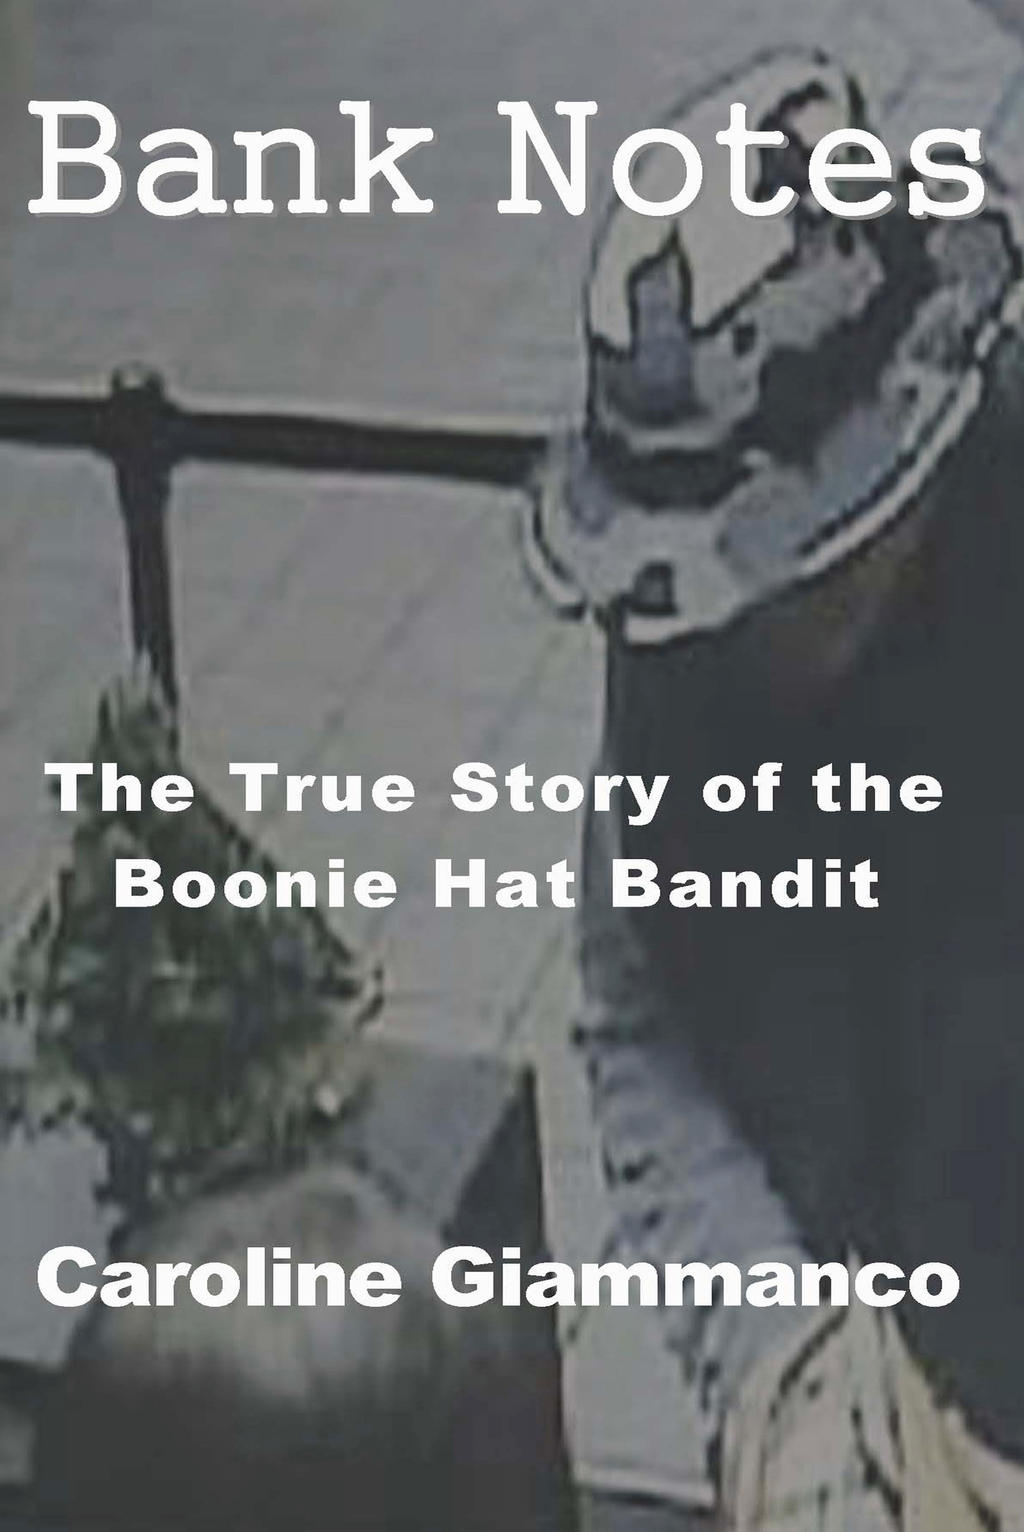 Bank Notes: The True Story of the Boonie Hat Bandi